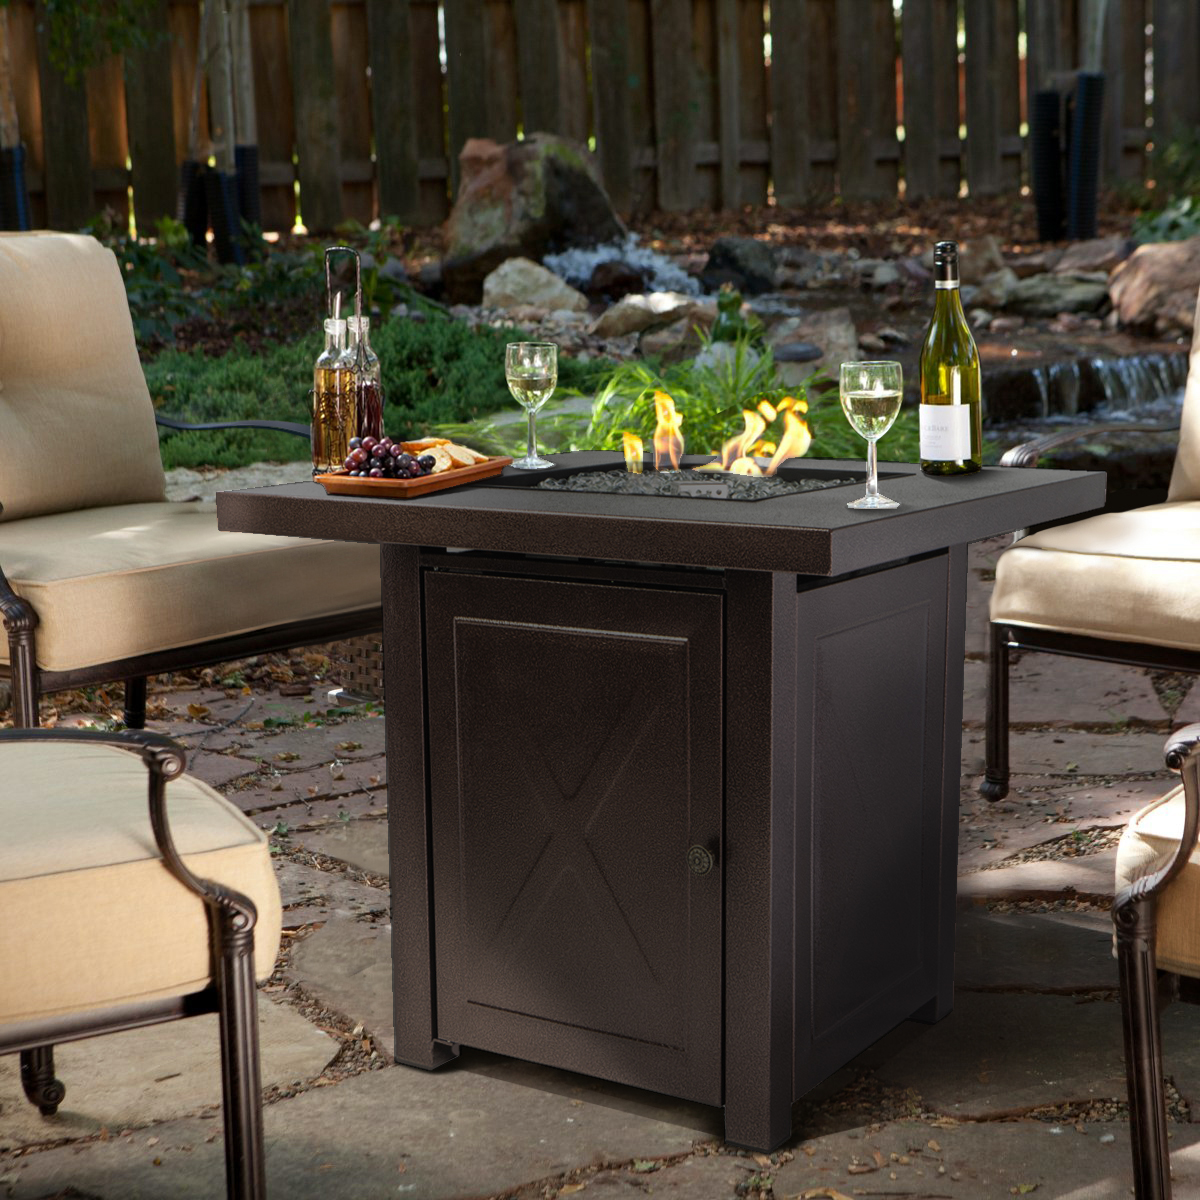 Barton Fire Pit Table Gl Fireplace Garden Outdoor Patio Heater Firepit With Lid 46 000btu